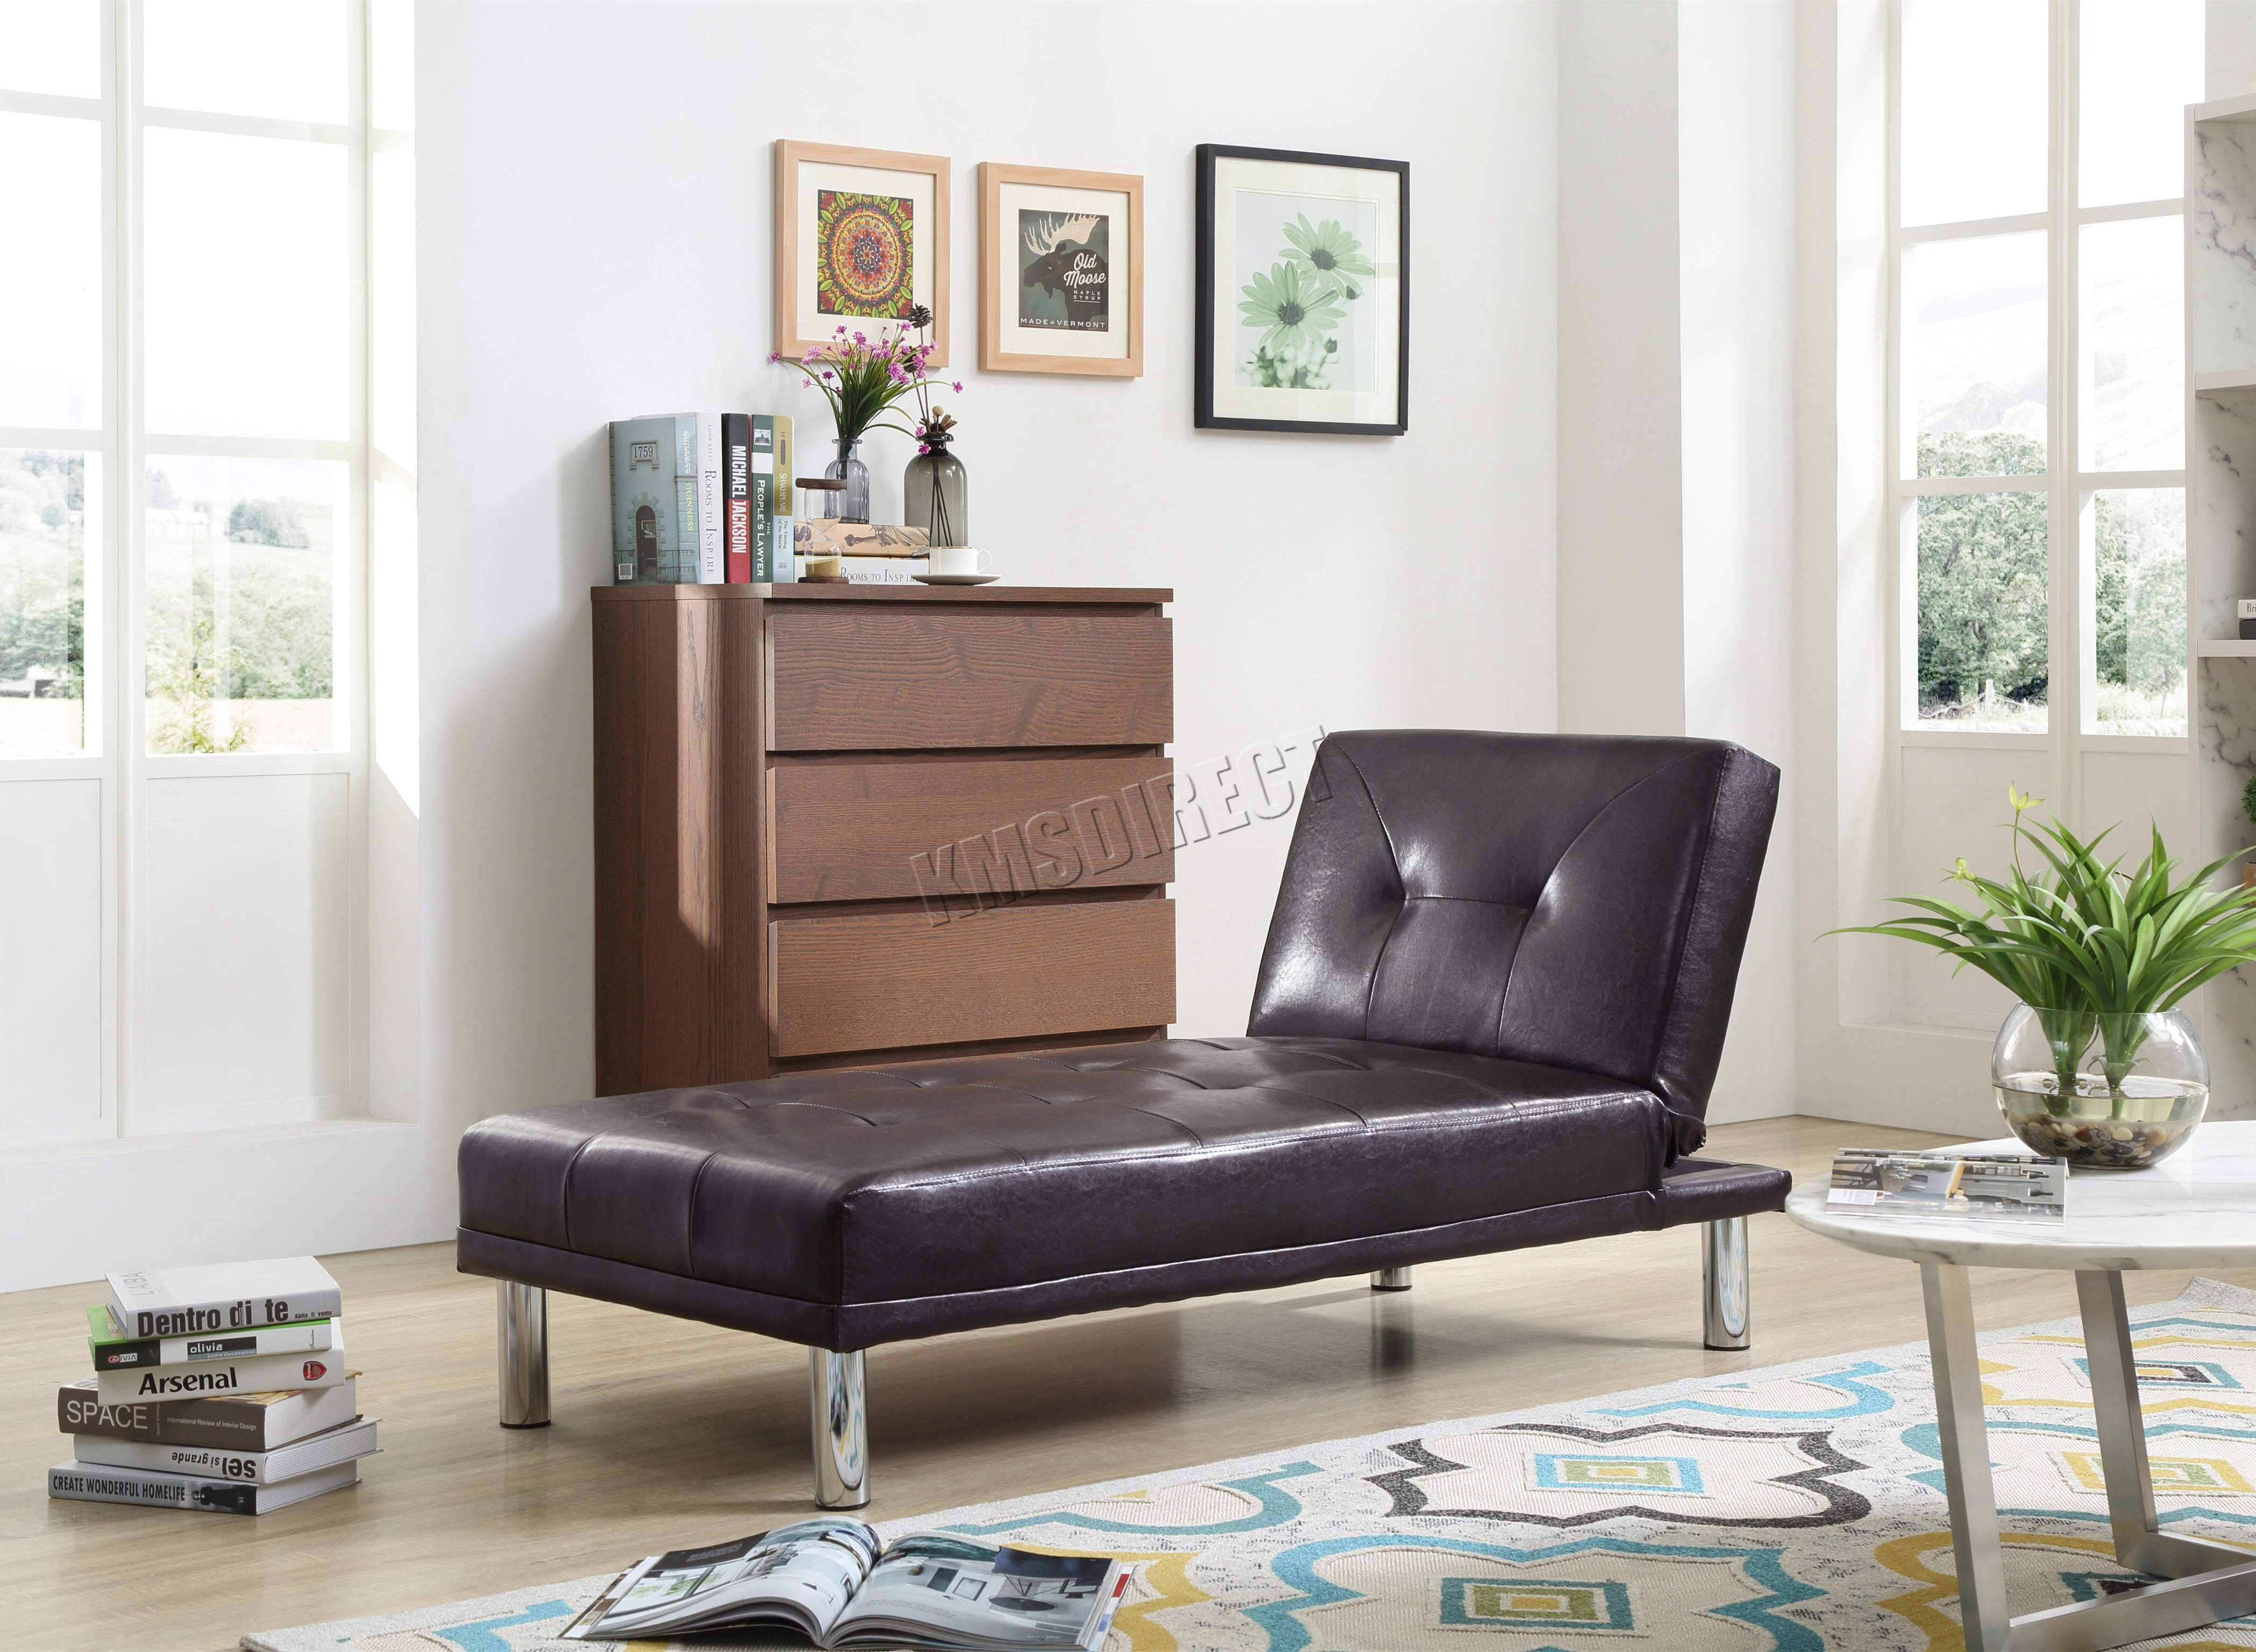 FoxHunter Chaise Longue Single Sofa Bed 1 Seater Couch